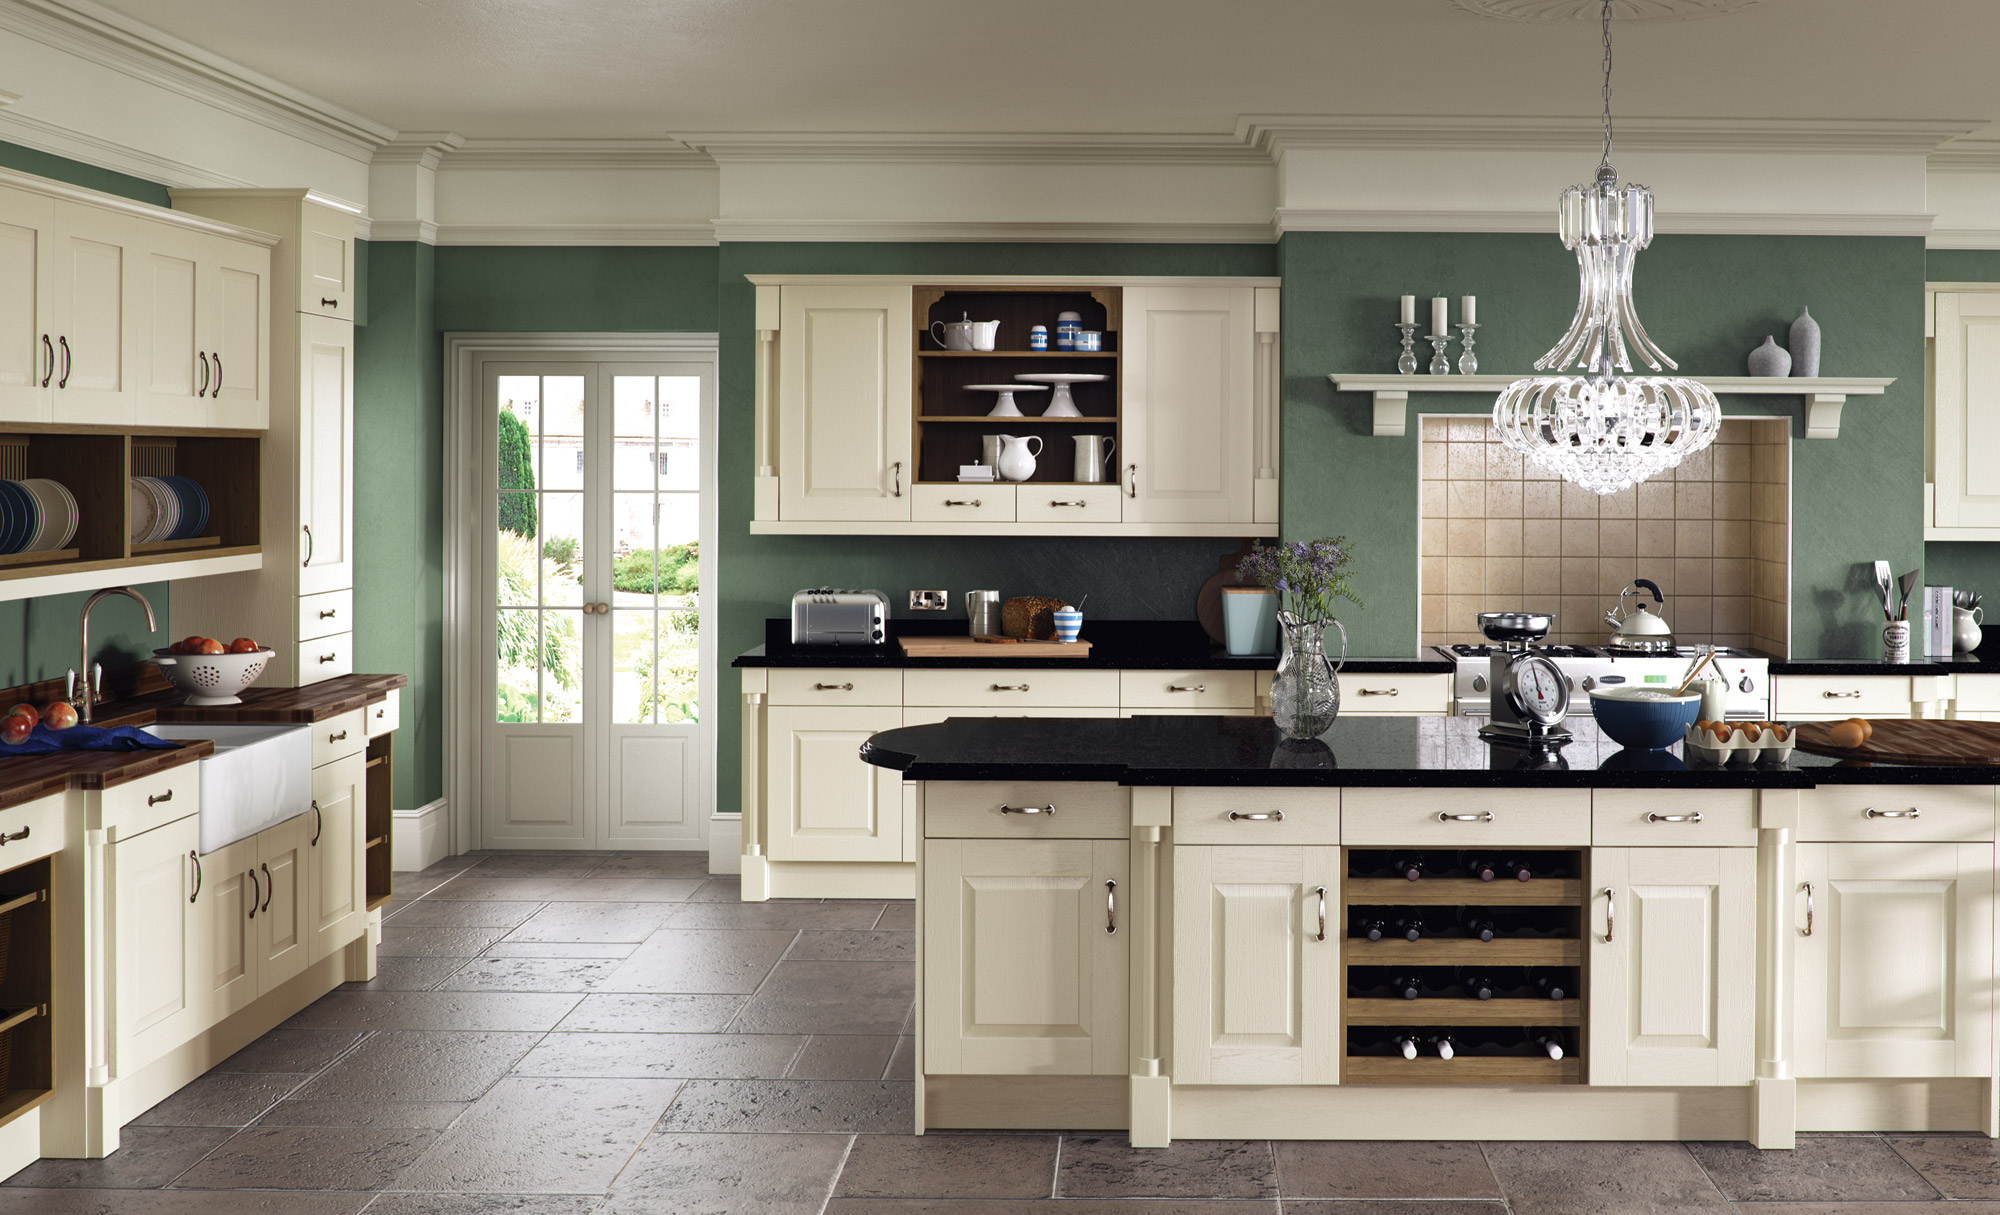 ivory kitchens design ideas. Classic traditional Windsor Kitchen In Painted Ivory Collection  Bespoke Designs From Stori